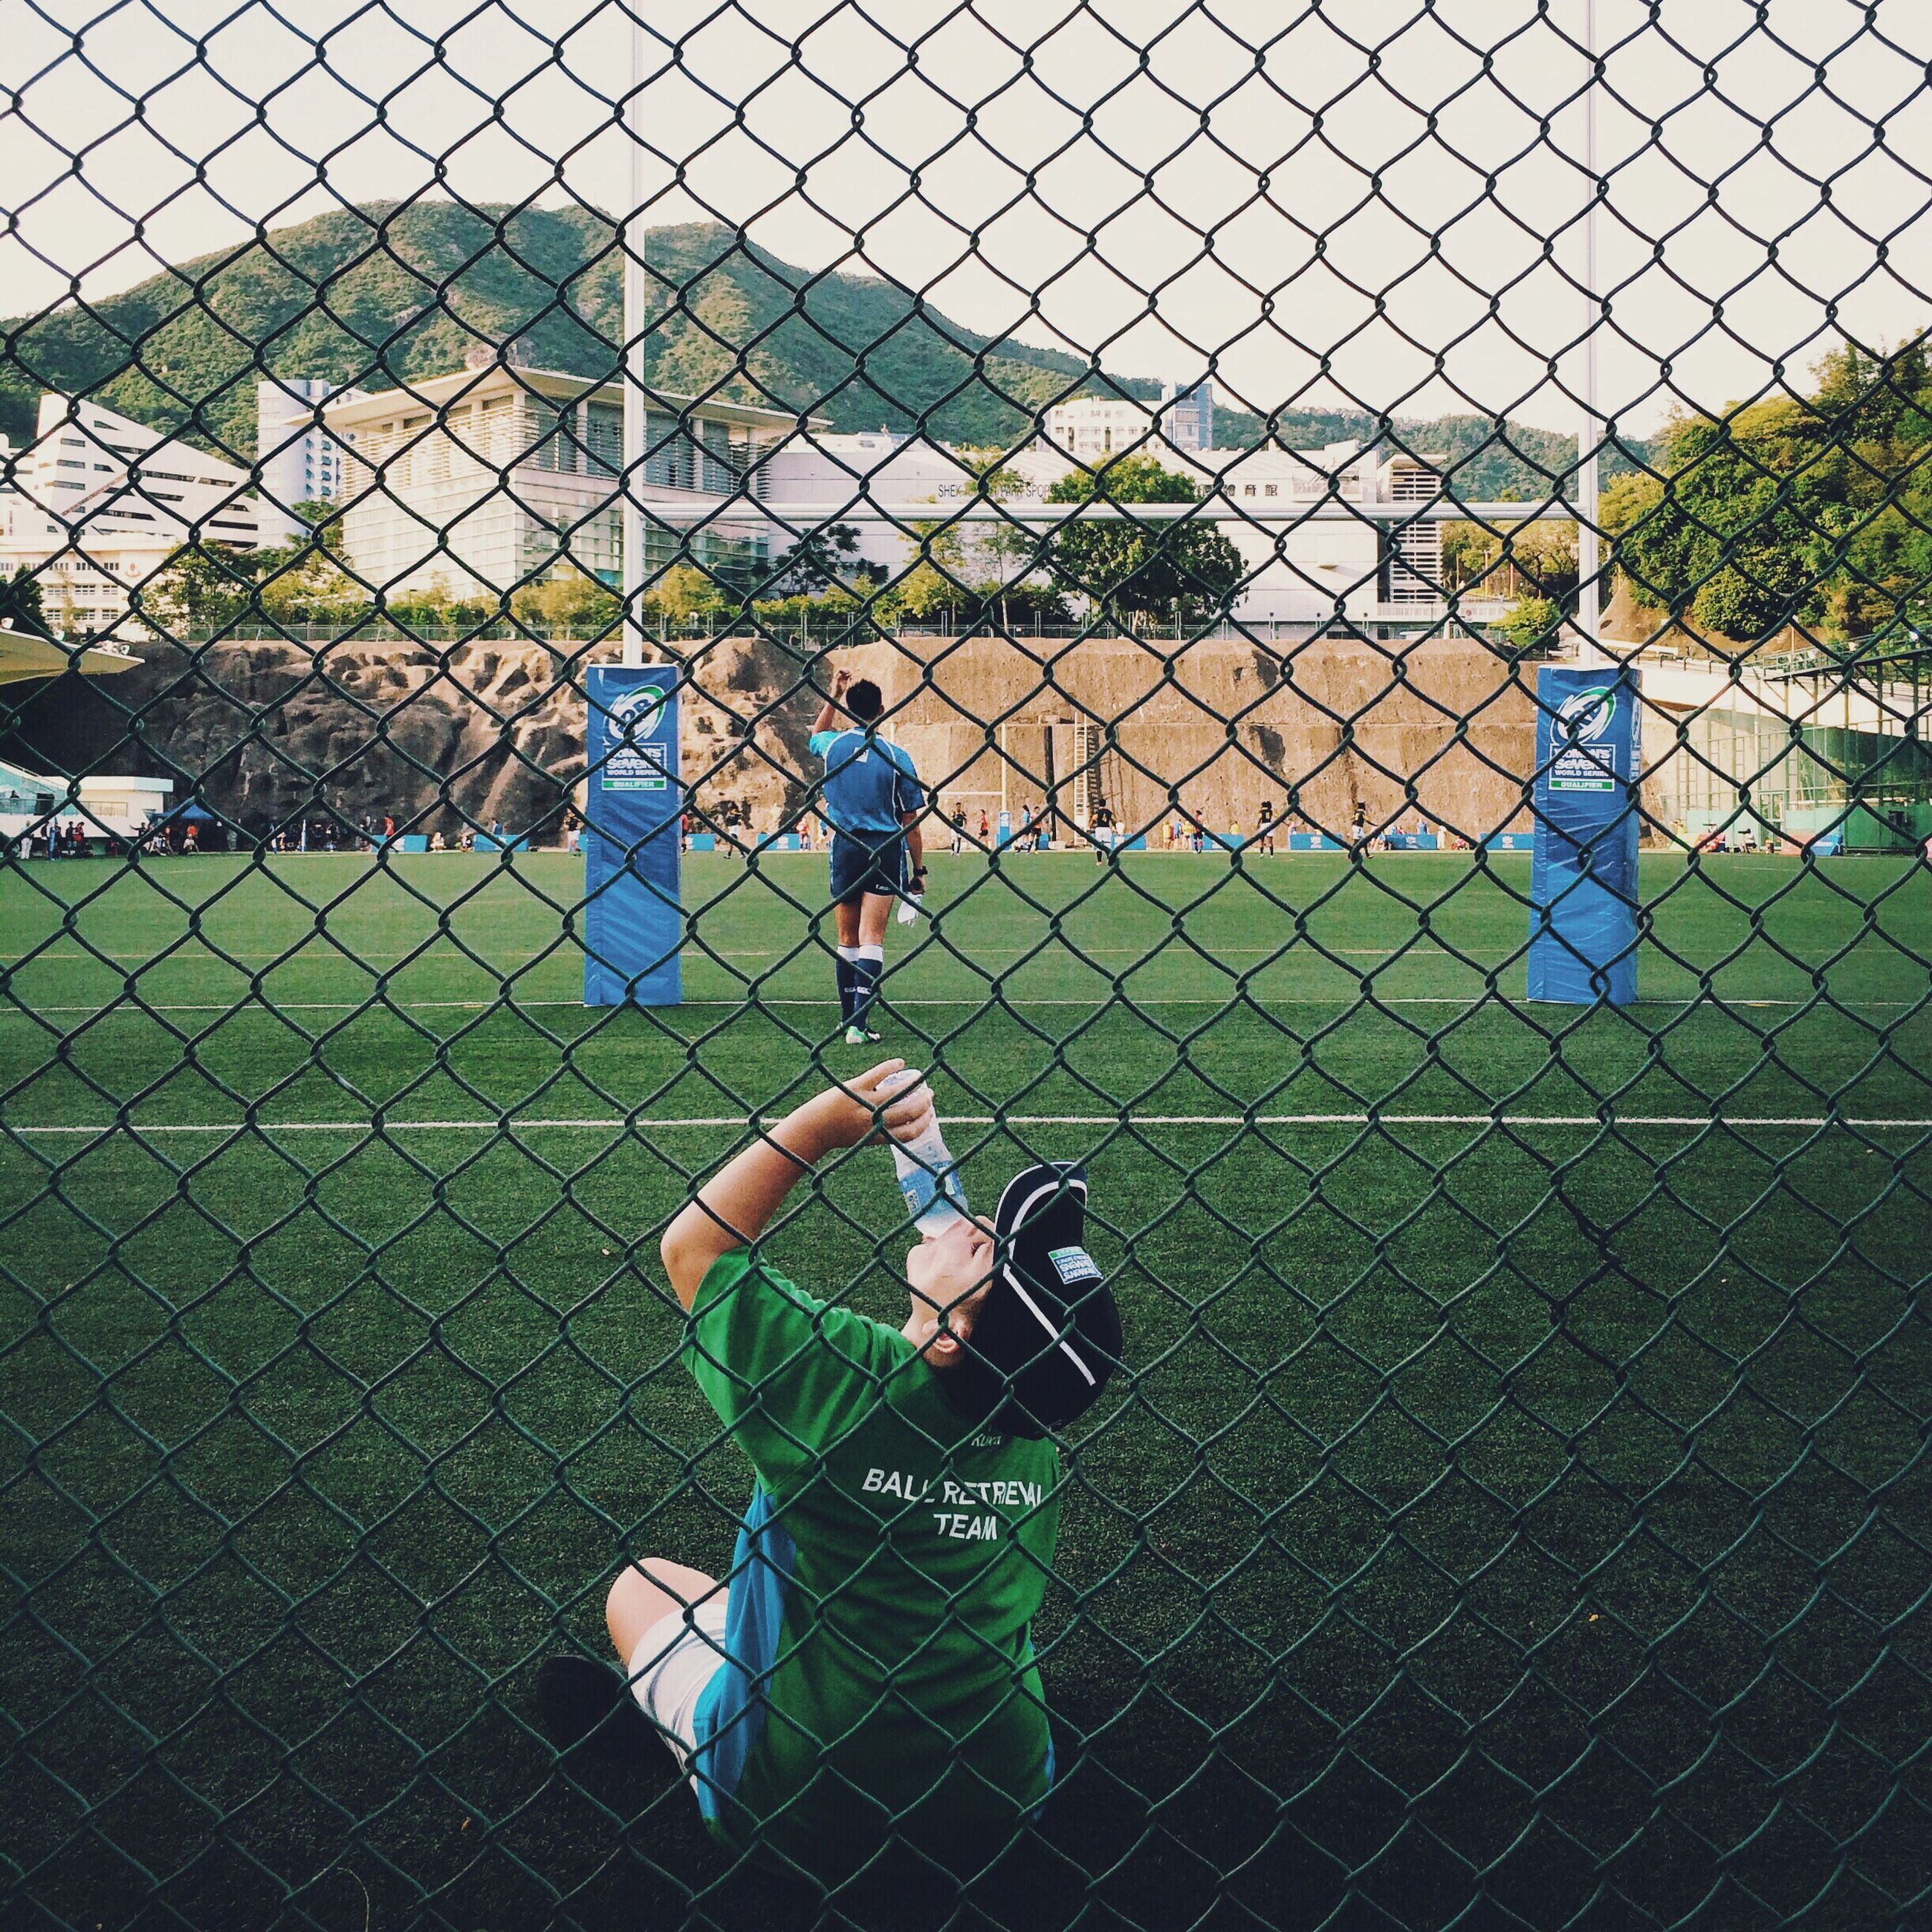 chainlink fence, fence, safety, protection, childhood, security, lifestyles, grass, sport, leisure activity, metal, field, playground, boys, playing, soccer, full length, elementary age, day